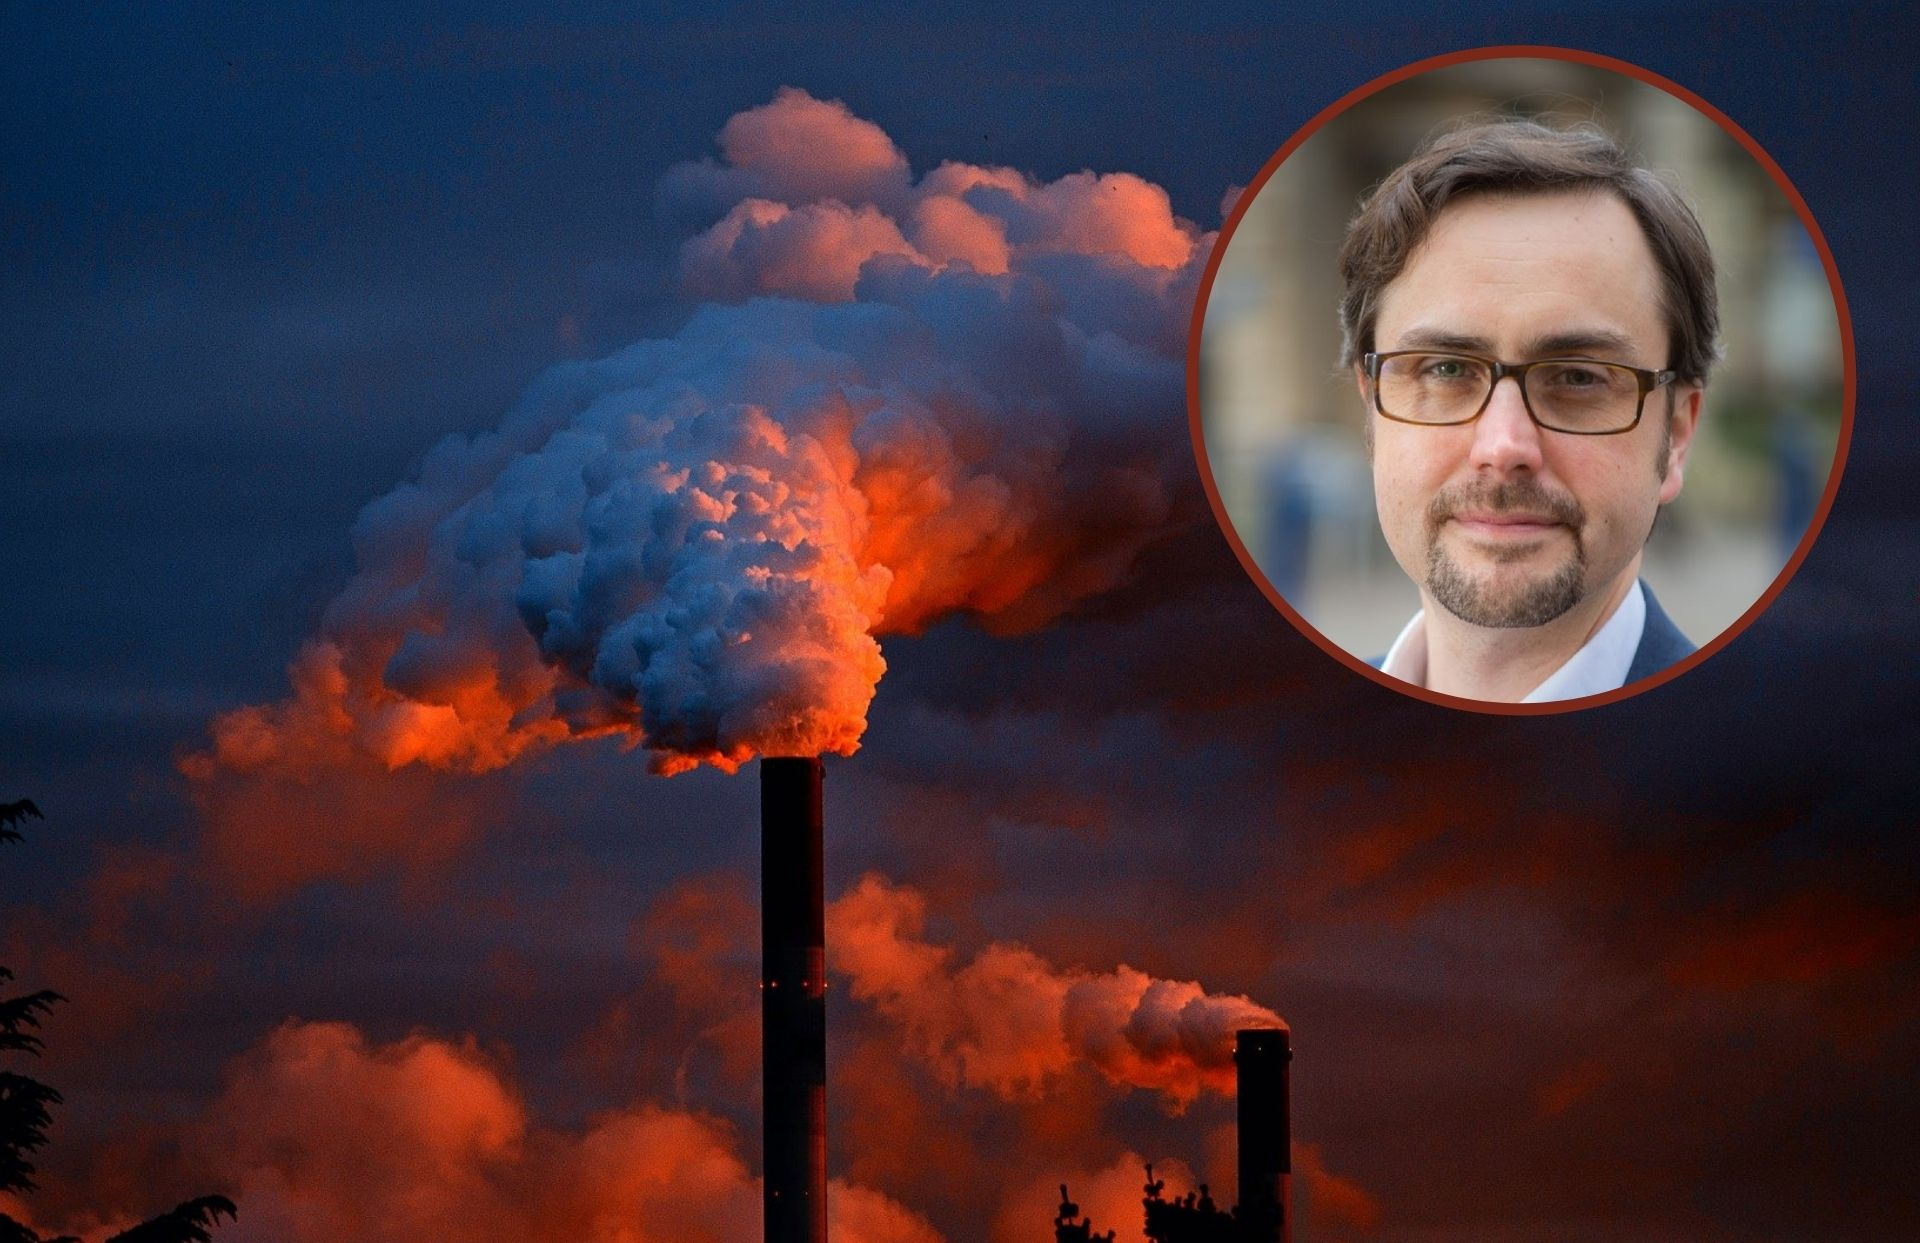 What have you been doing to help fight climate change? - South Wales Argus